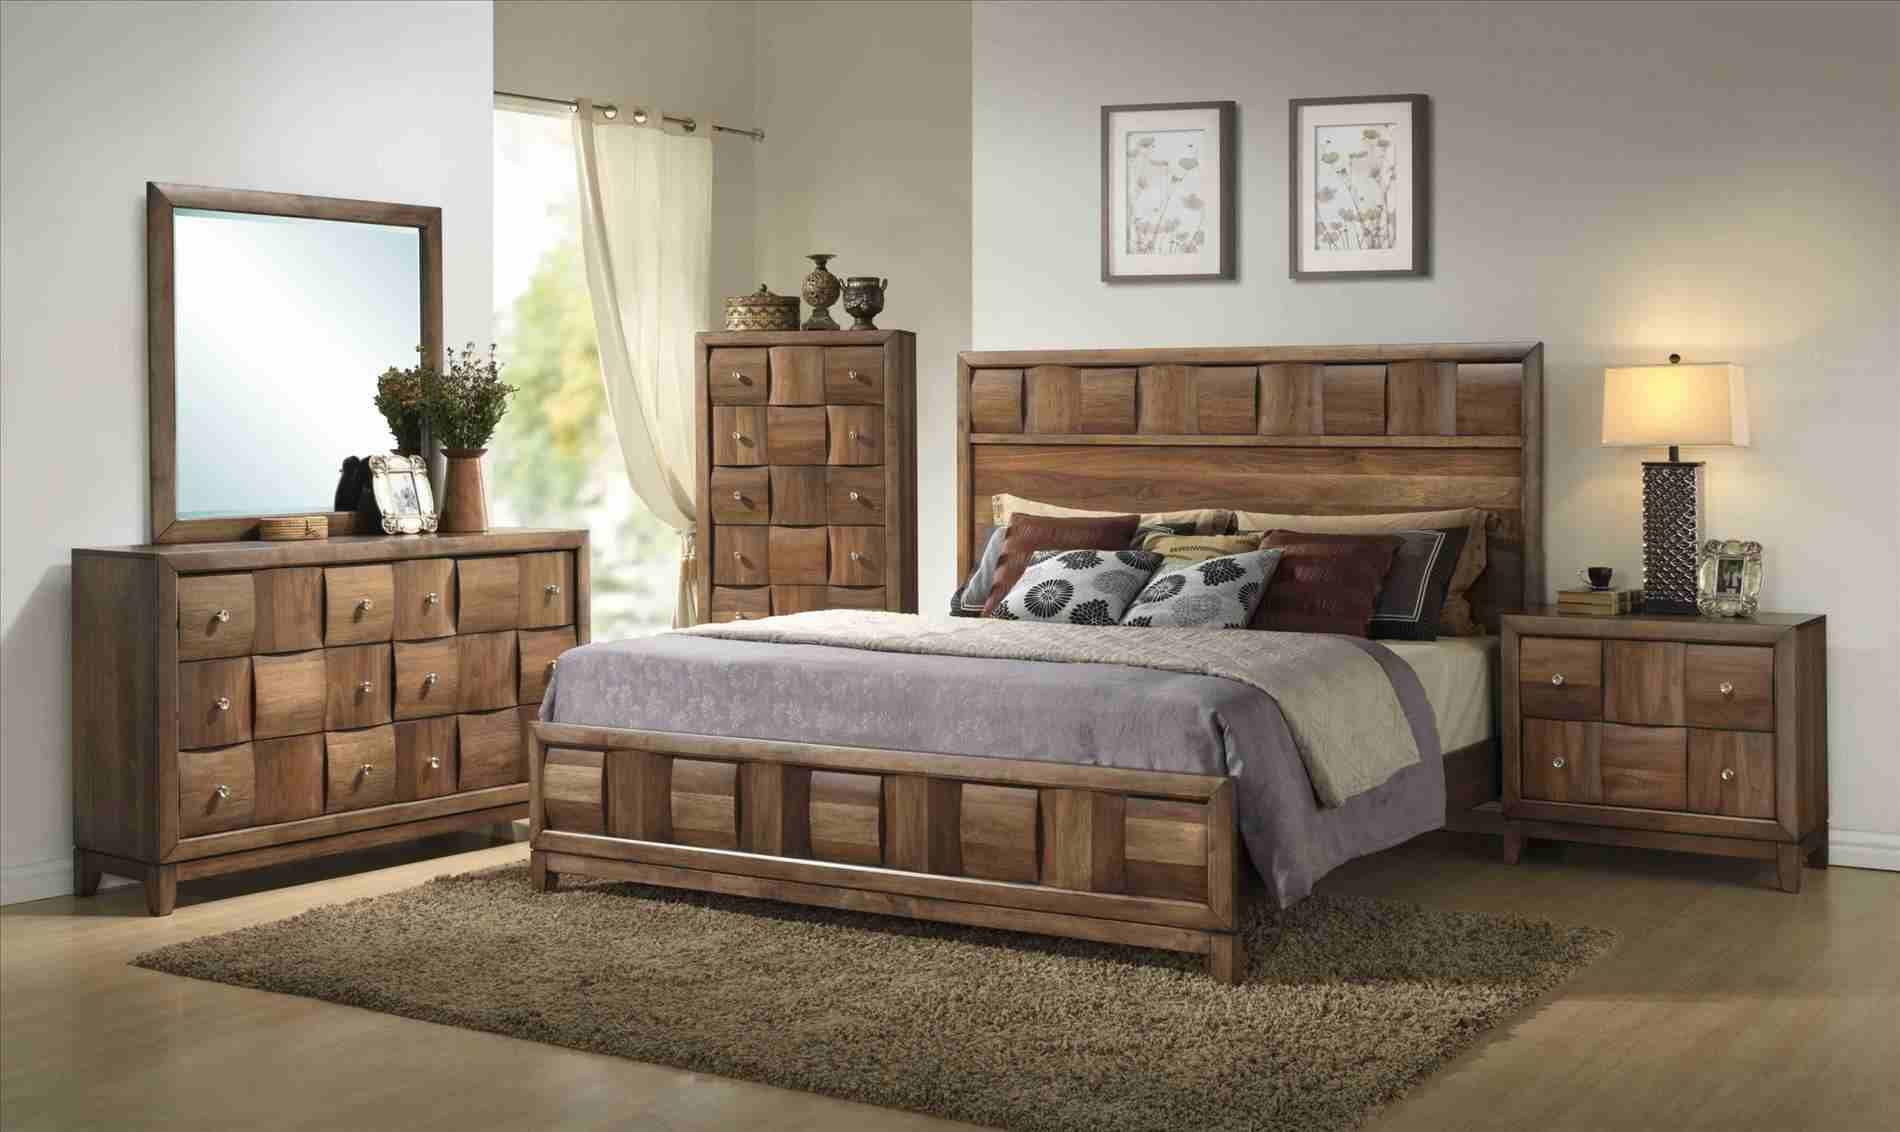 Solid Wood Bedroom Furniture - bedroom: cheap solid wood bedroom